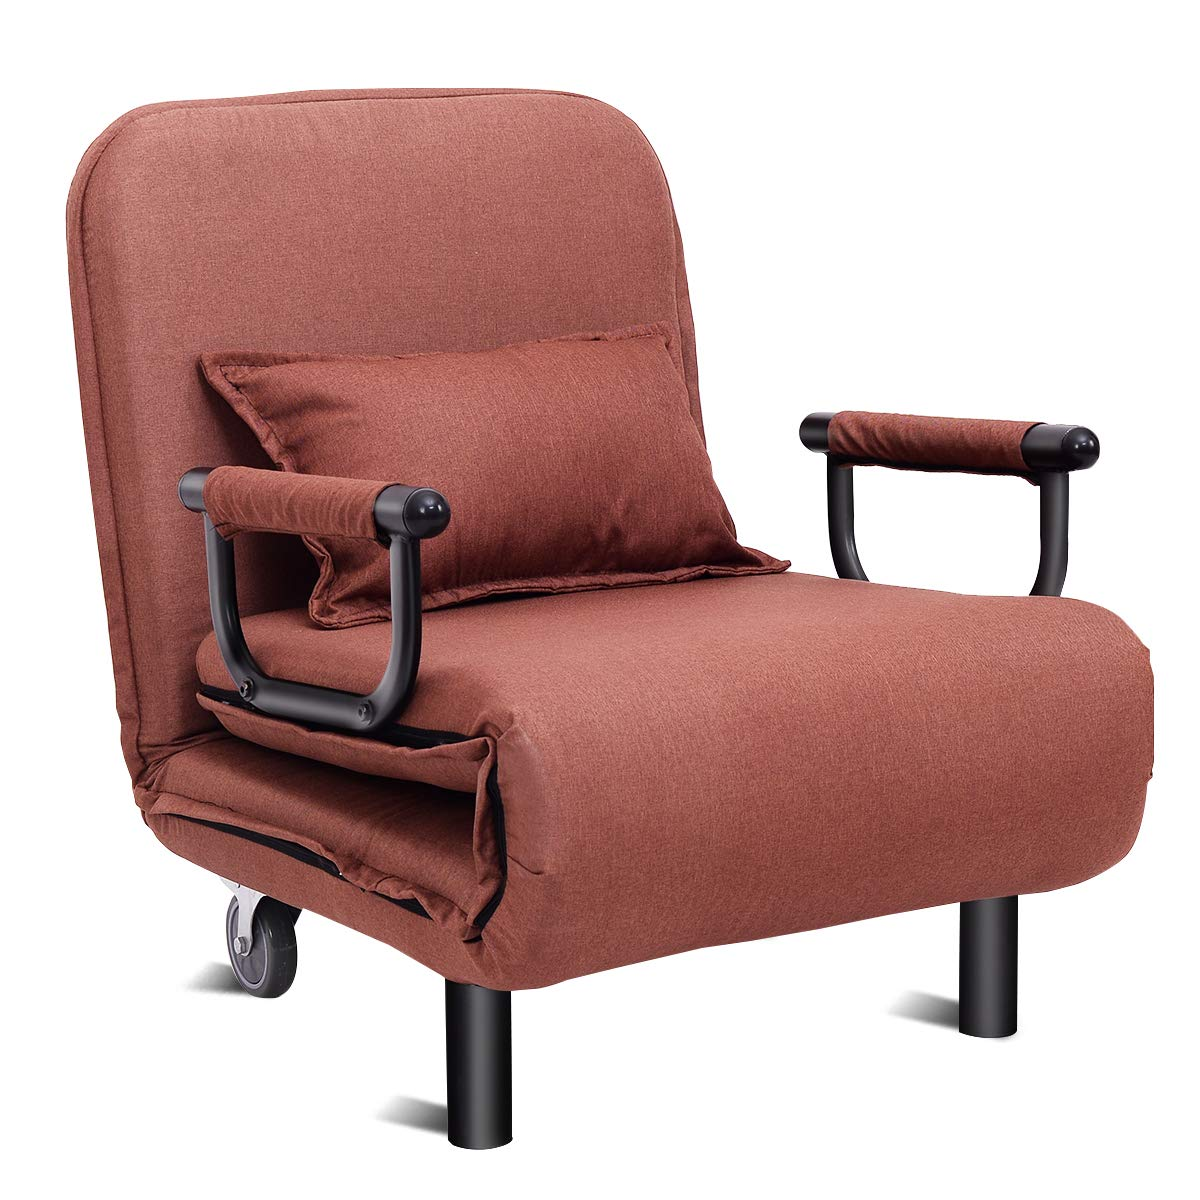 Giantex 26.5'' Convertible Sofa Bed Folding Arm Chair Sleeper Leisure Recliner Lounge Couch (Coffee) by Giantex